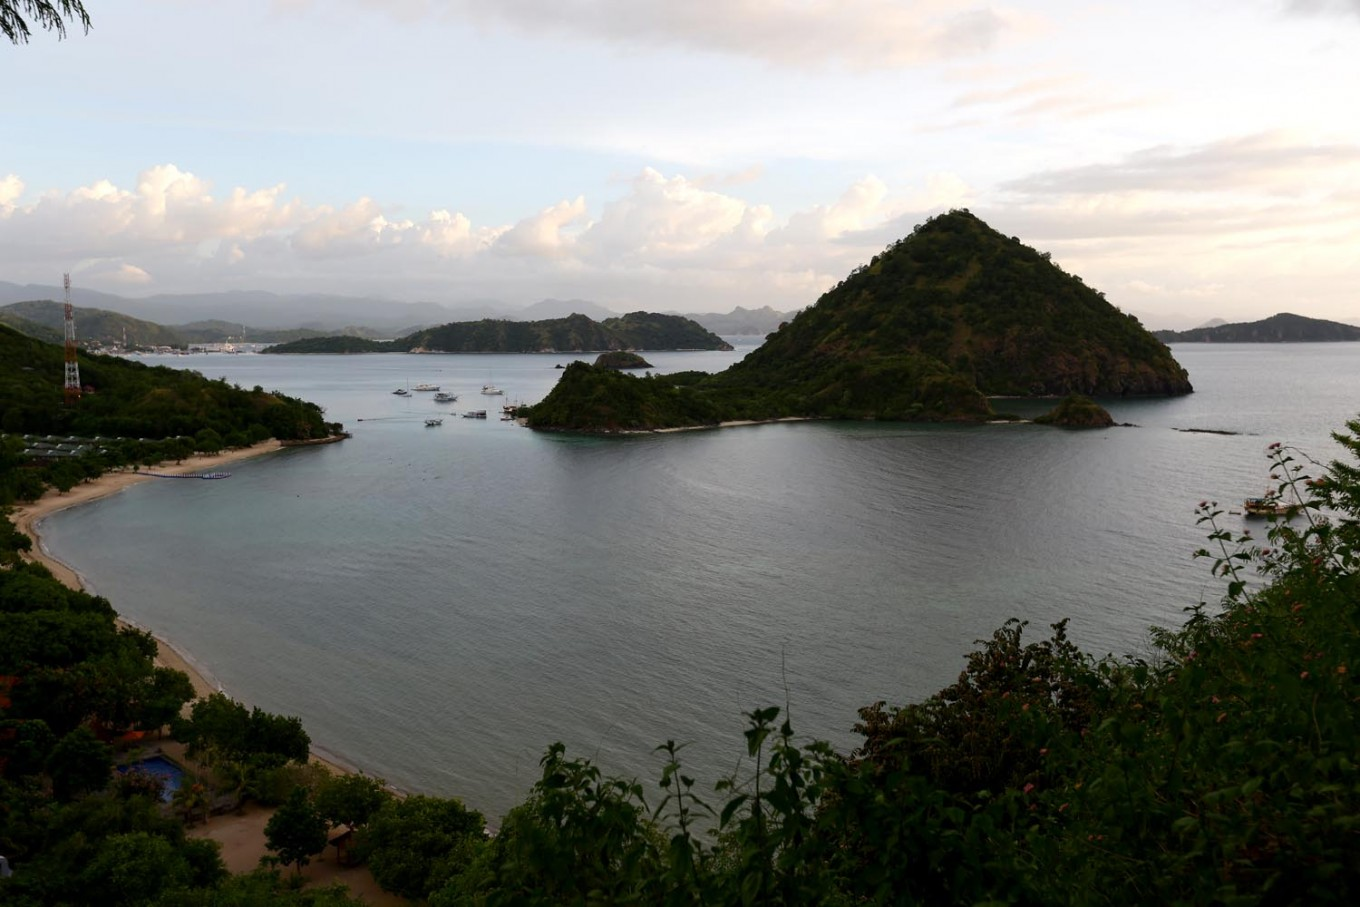 Authority to spend Rp 4 billion to help Labuan Bajo tourist industry